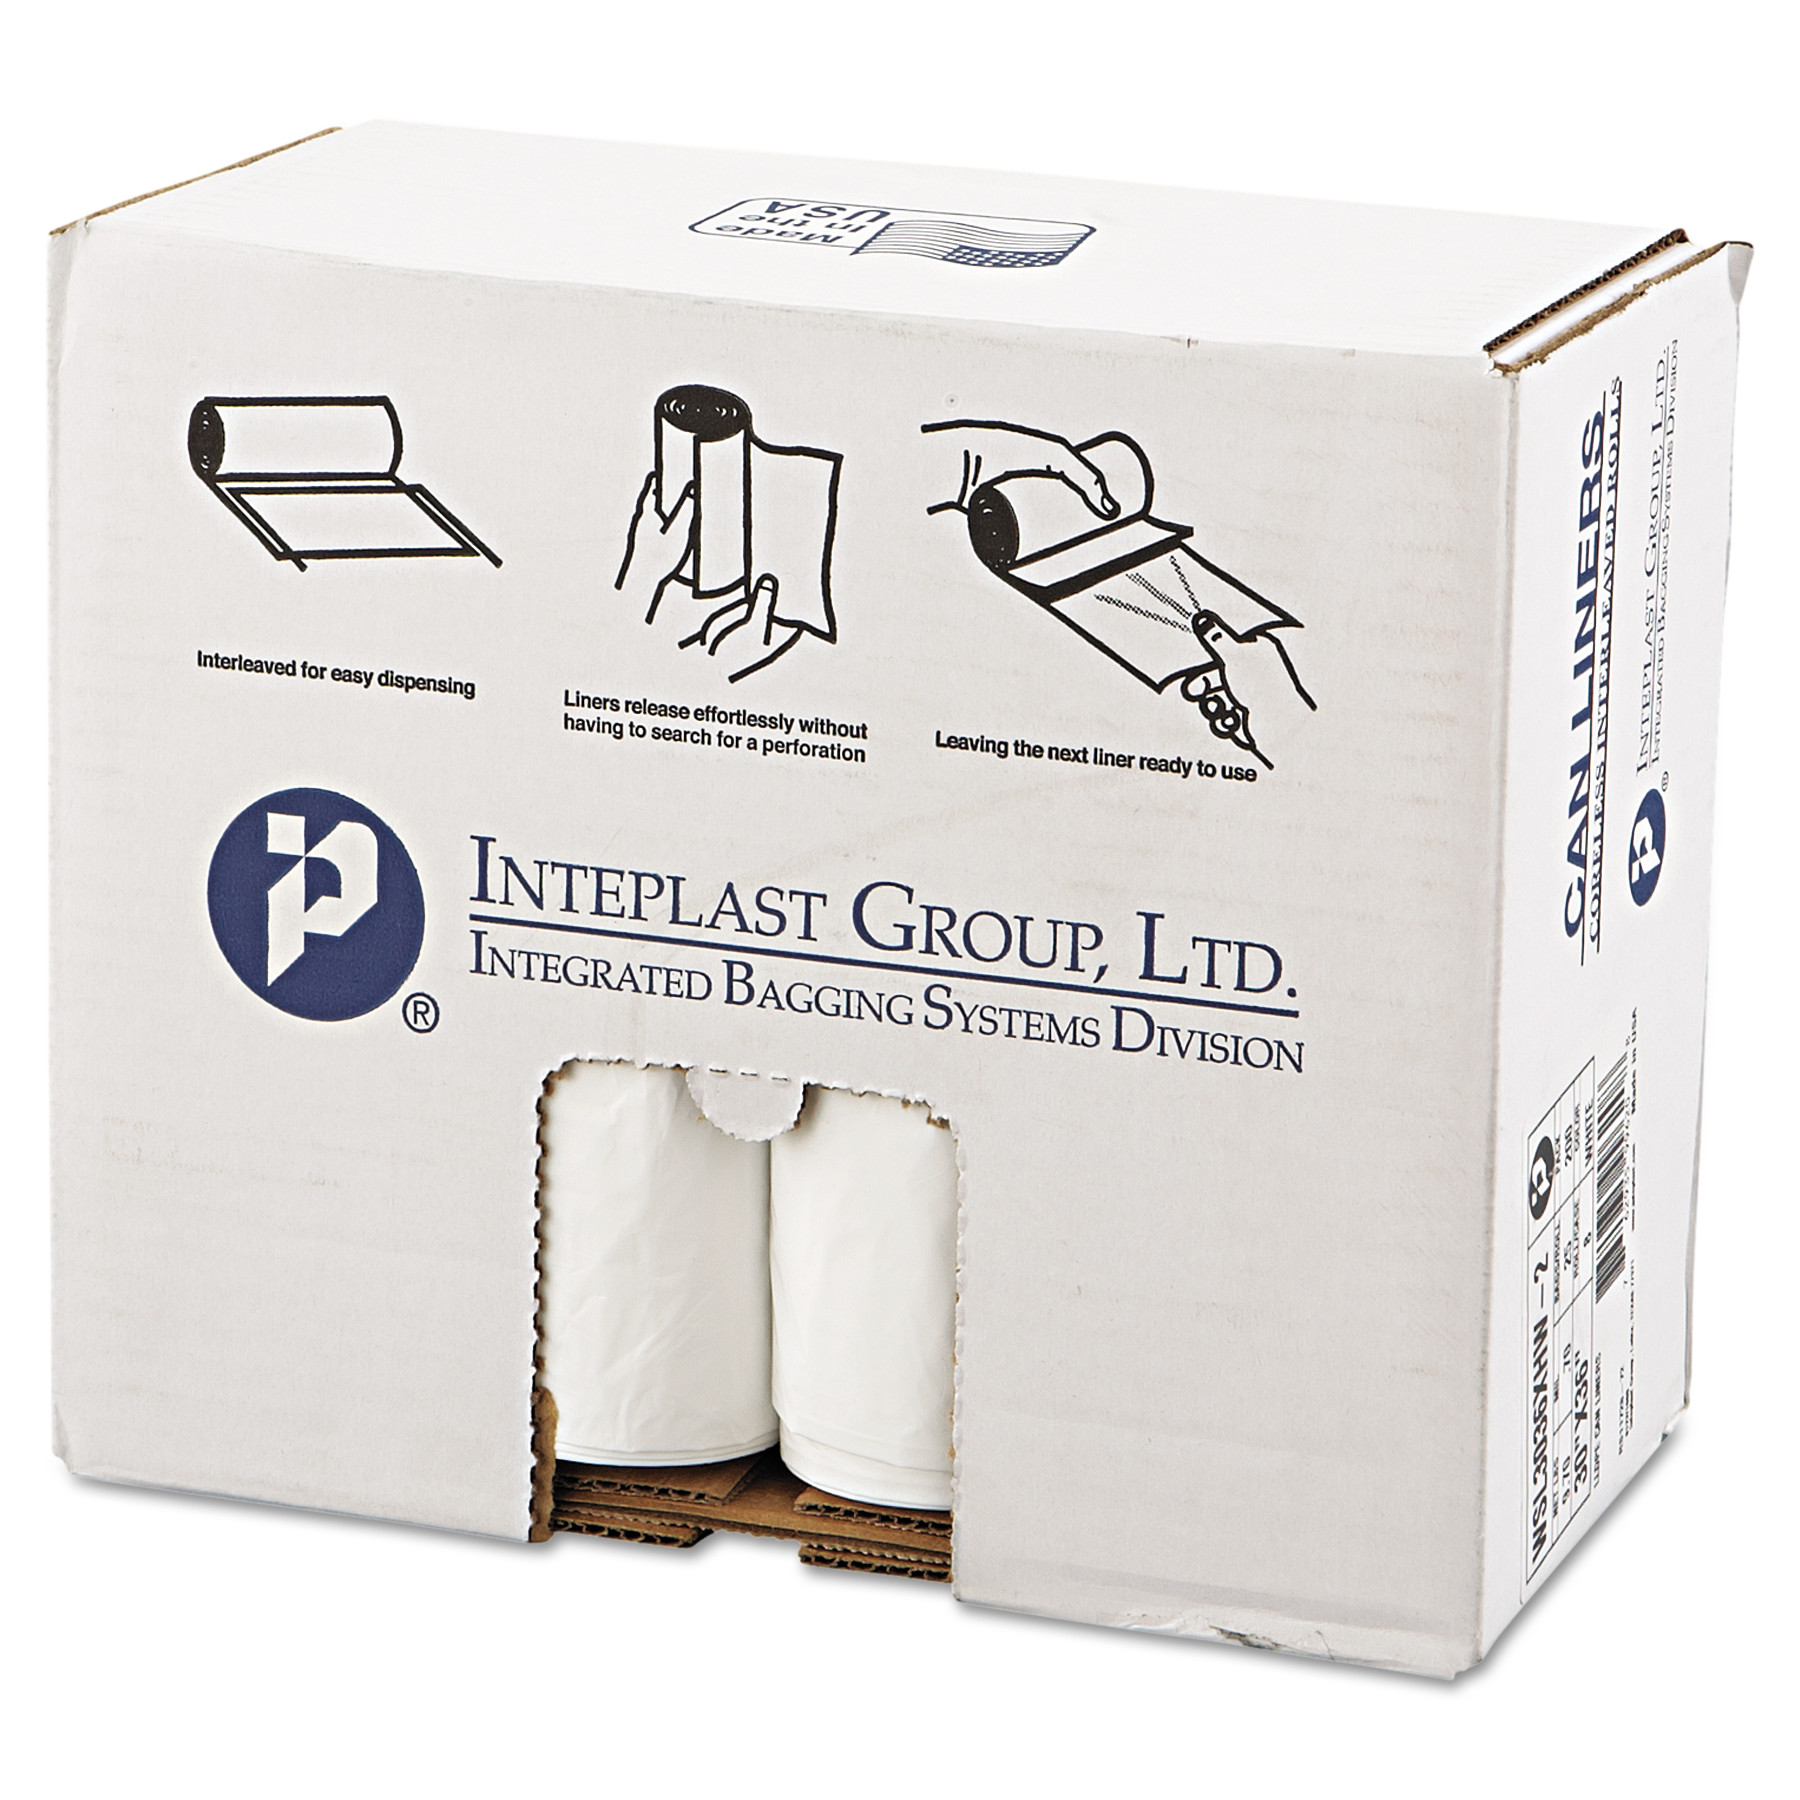 10 Bag per Roll Blk Penny Lane 516 Perforated Coreless Roll Can Liner Case of 10 Rolls 33x39 1.2 Mil